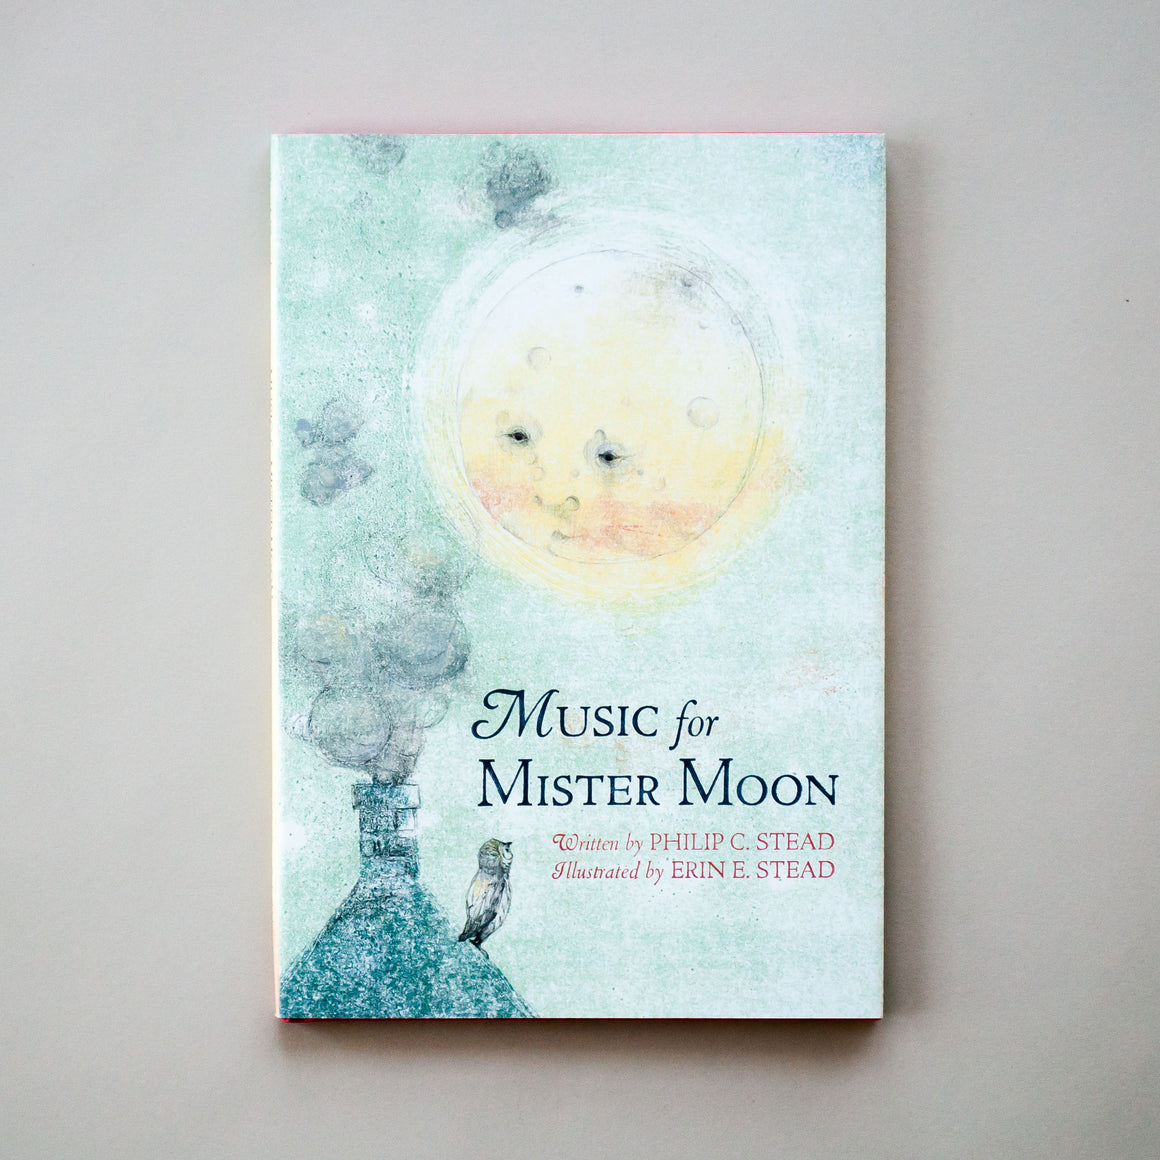 Music for Mister Moon - signed copy